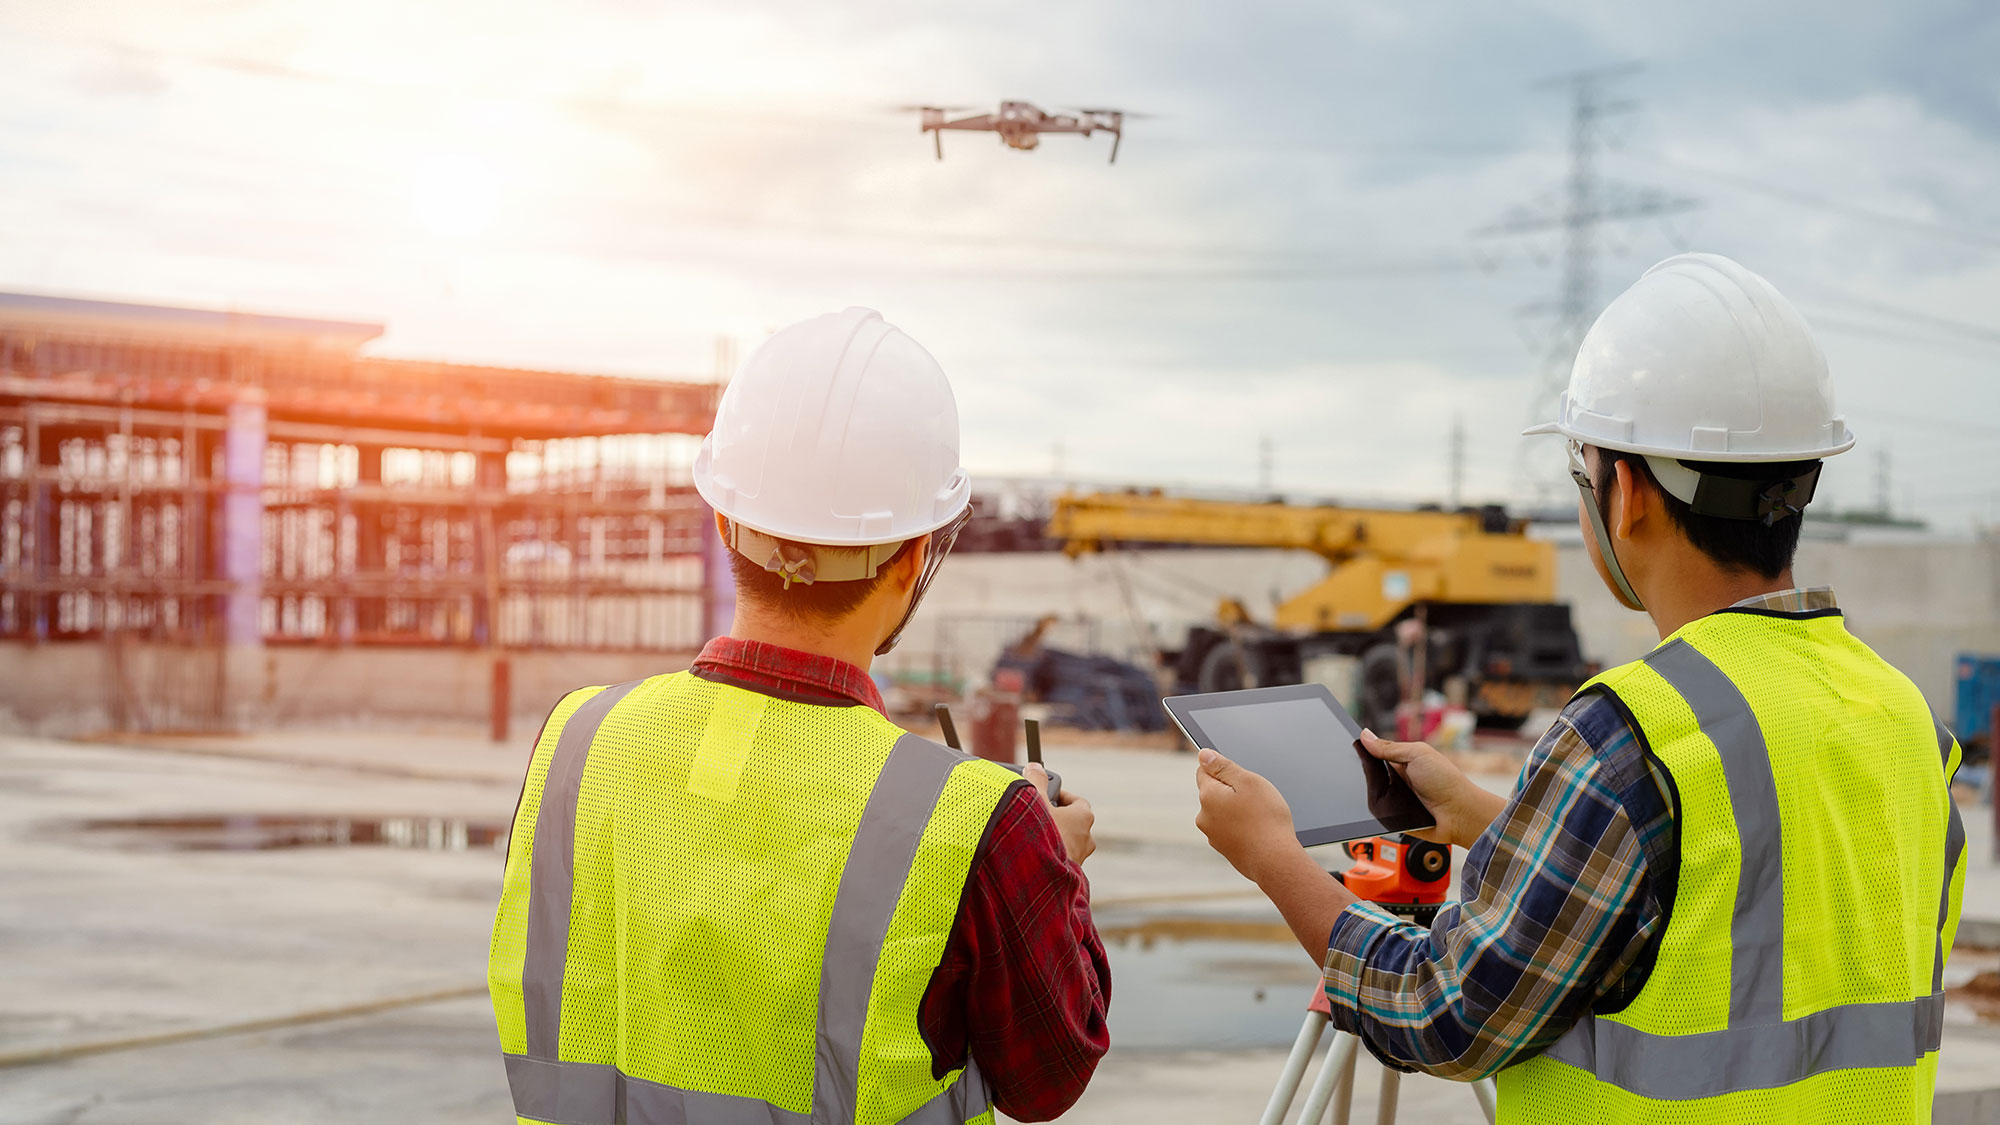 Drones in Construction: How Drones Are Helping Construction Companies